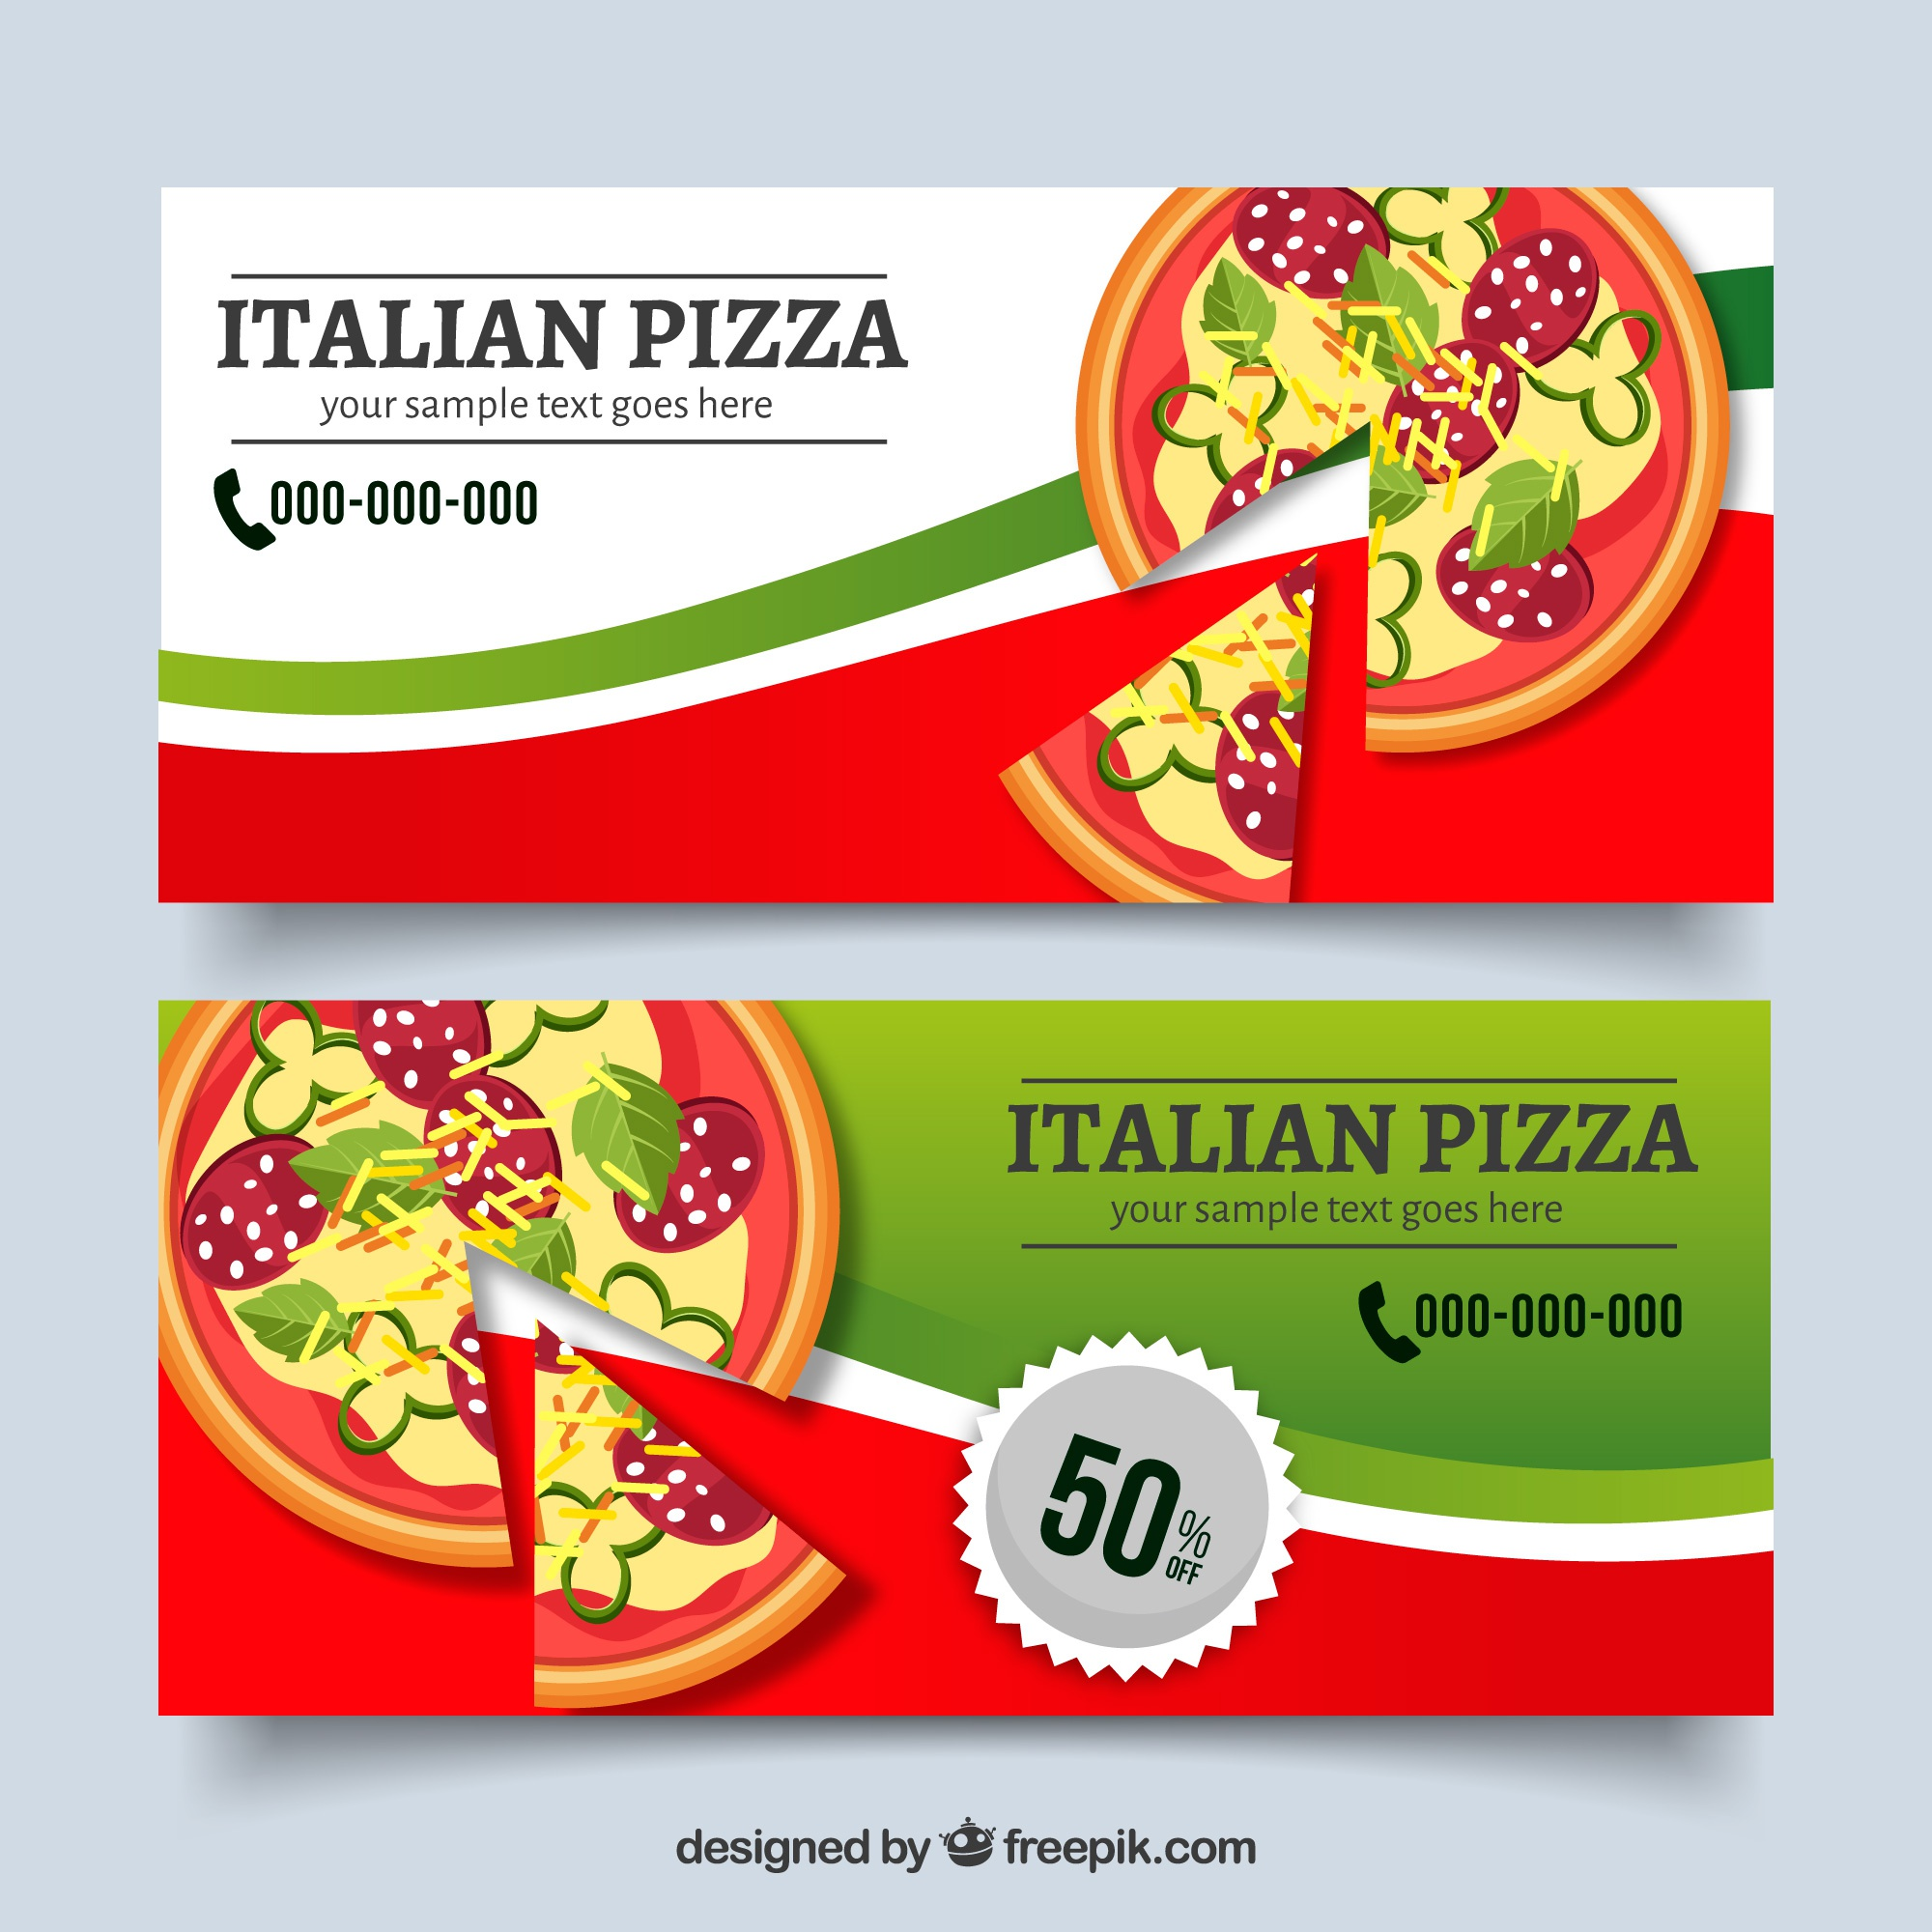 Pizza offers banners